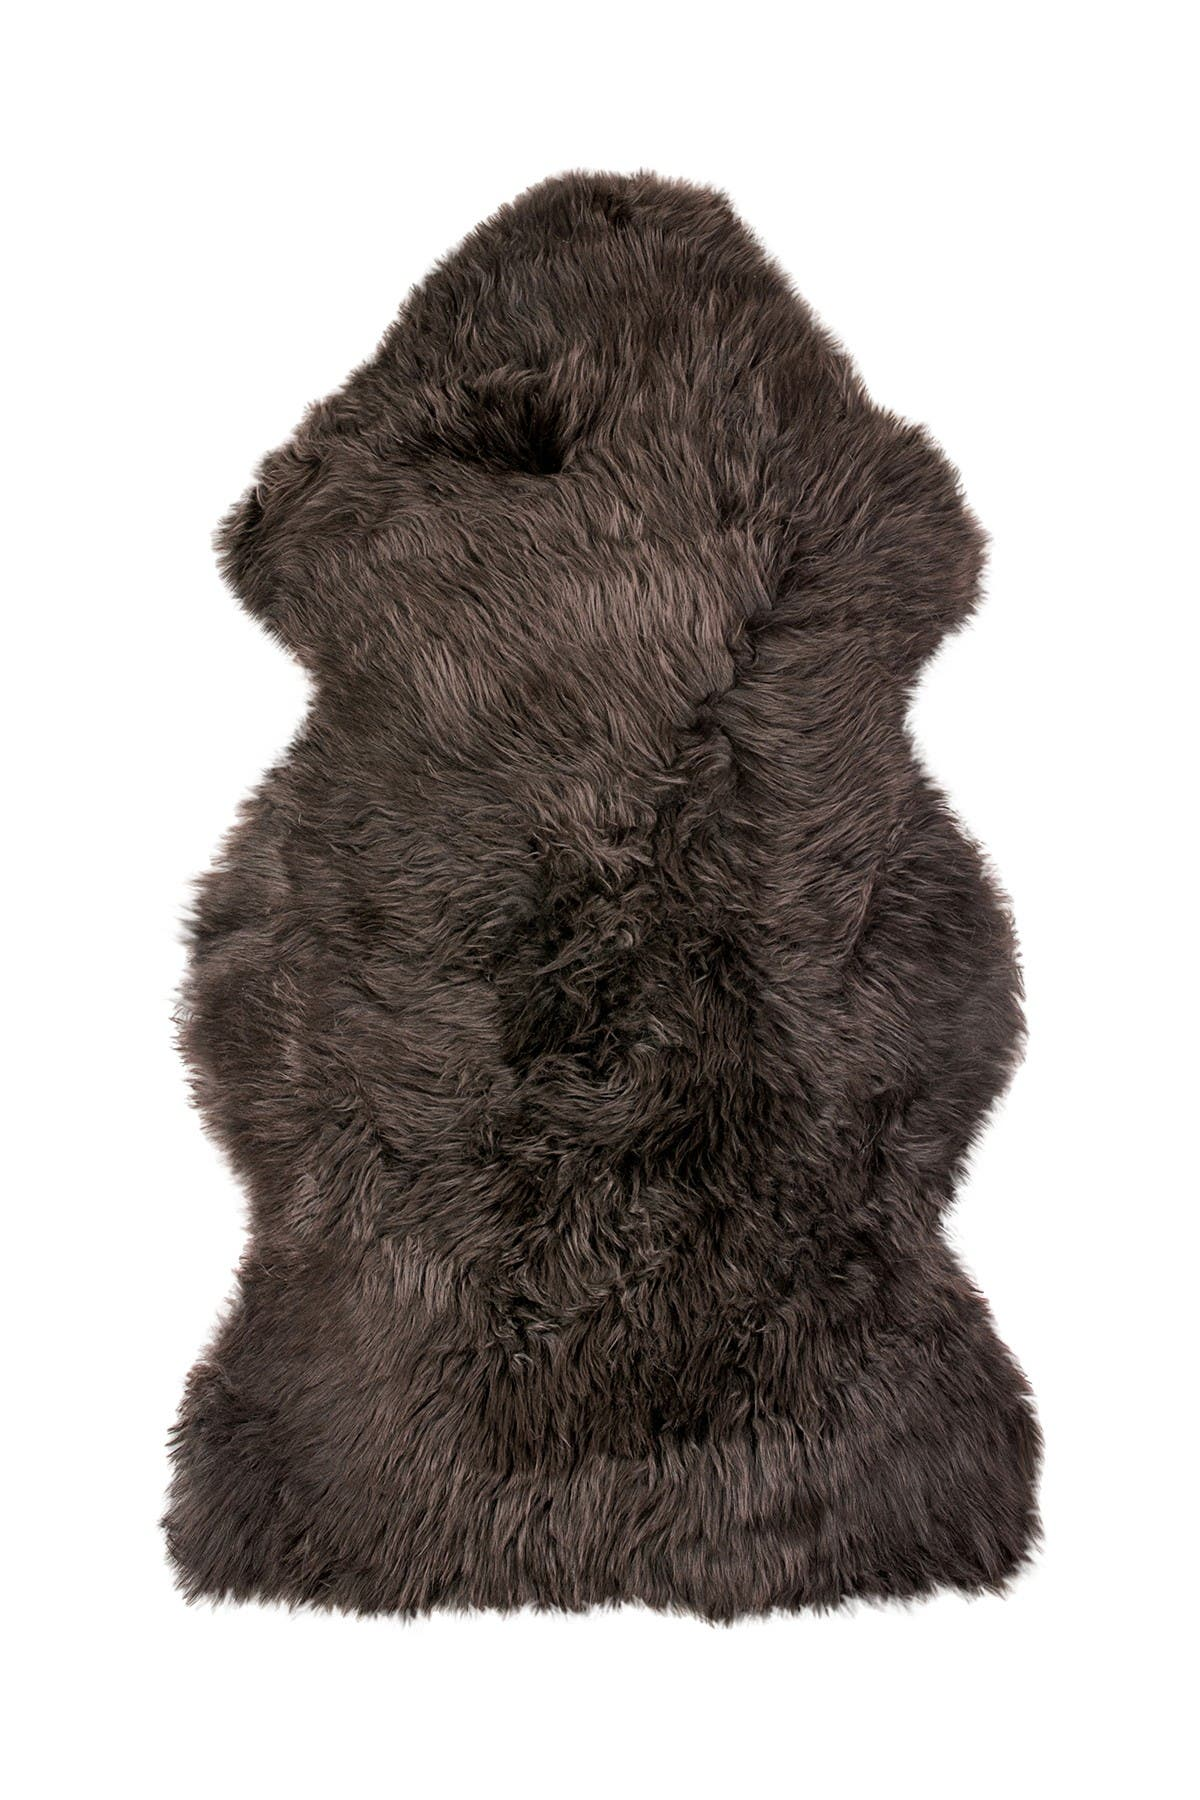 Image of Natural New Zealand Genuine Sheepskin Rug - 2ft x 3ft - Chocolate